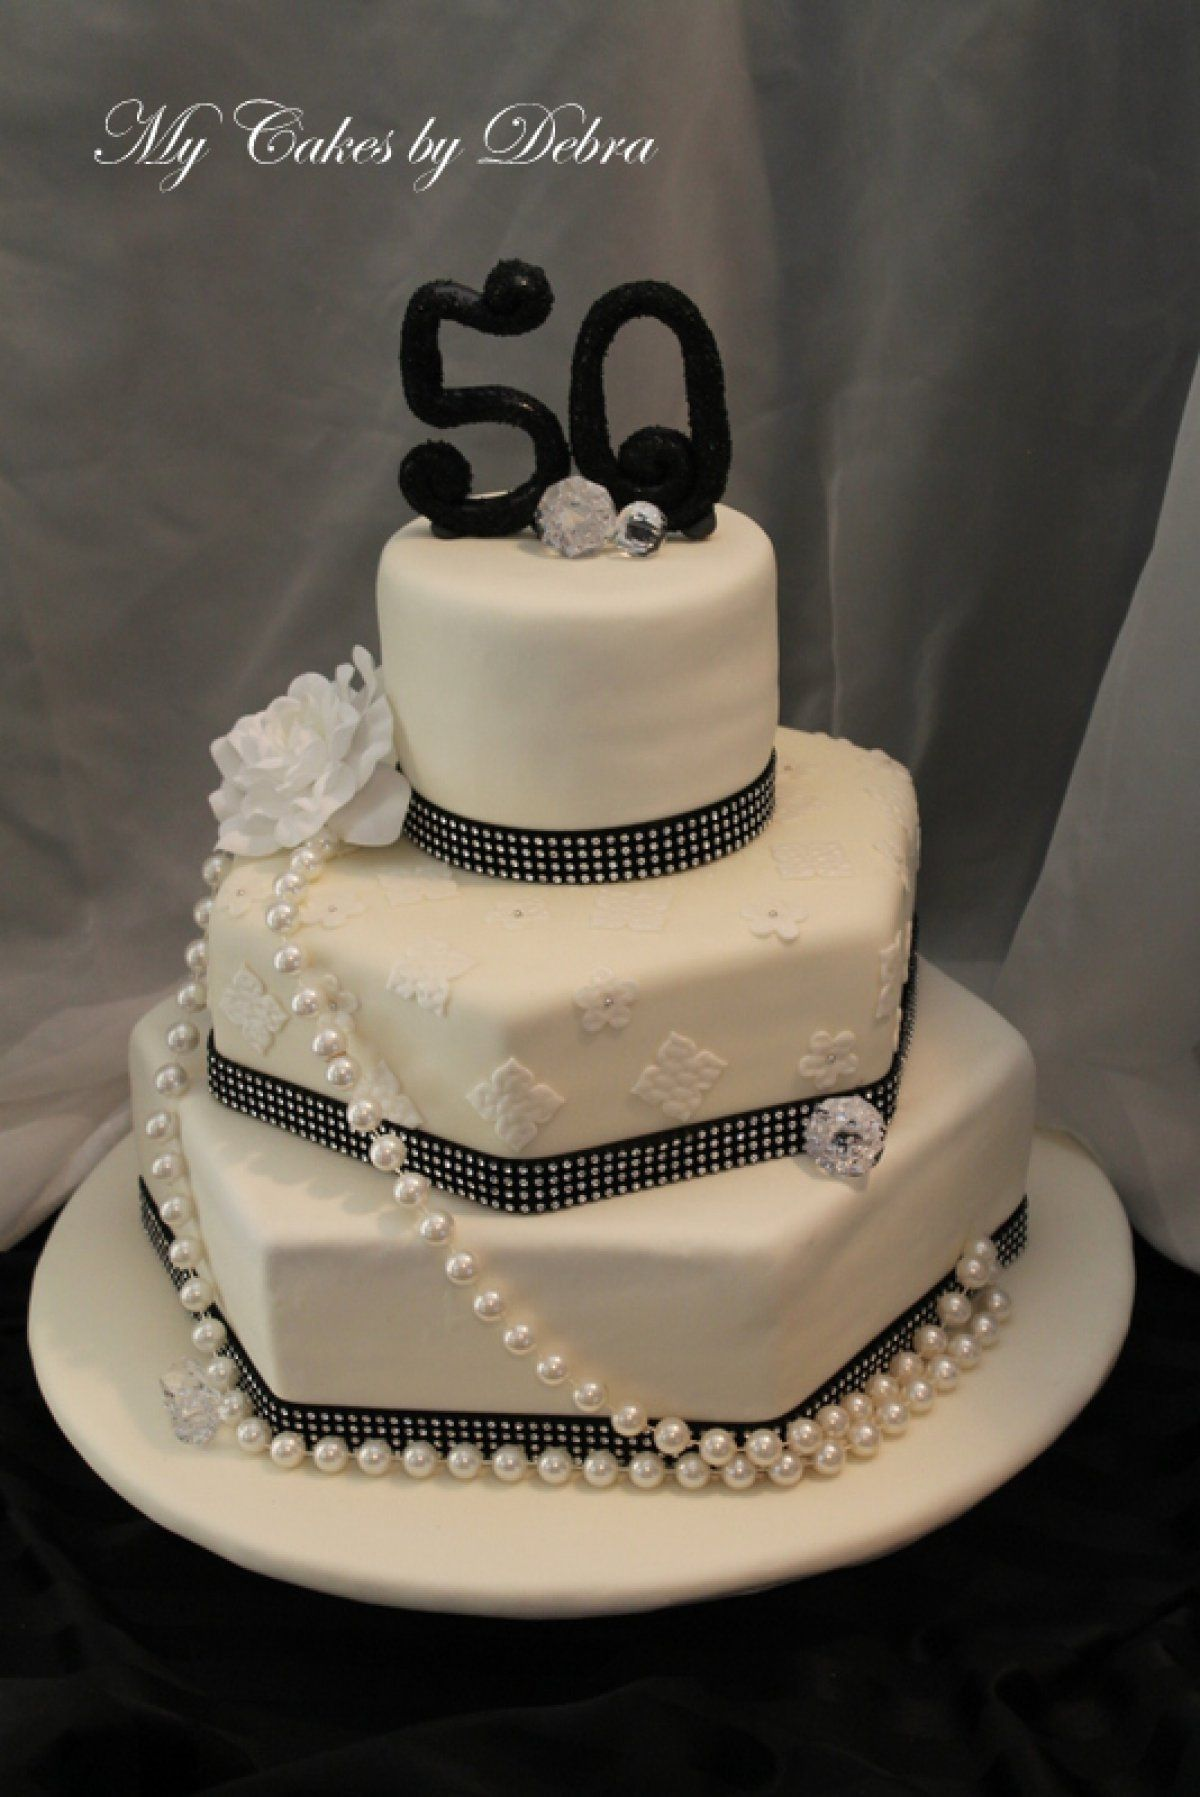 Fabulous 50th birthday cake ideas for men all unique for 50th birthday cake decoration ideas